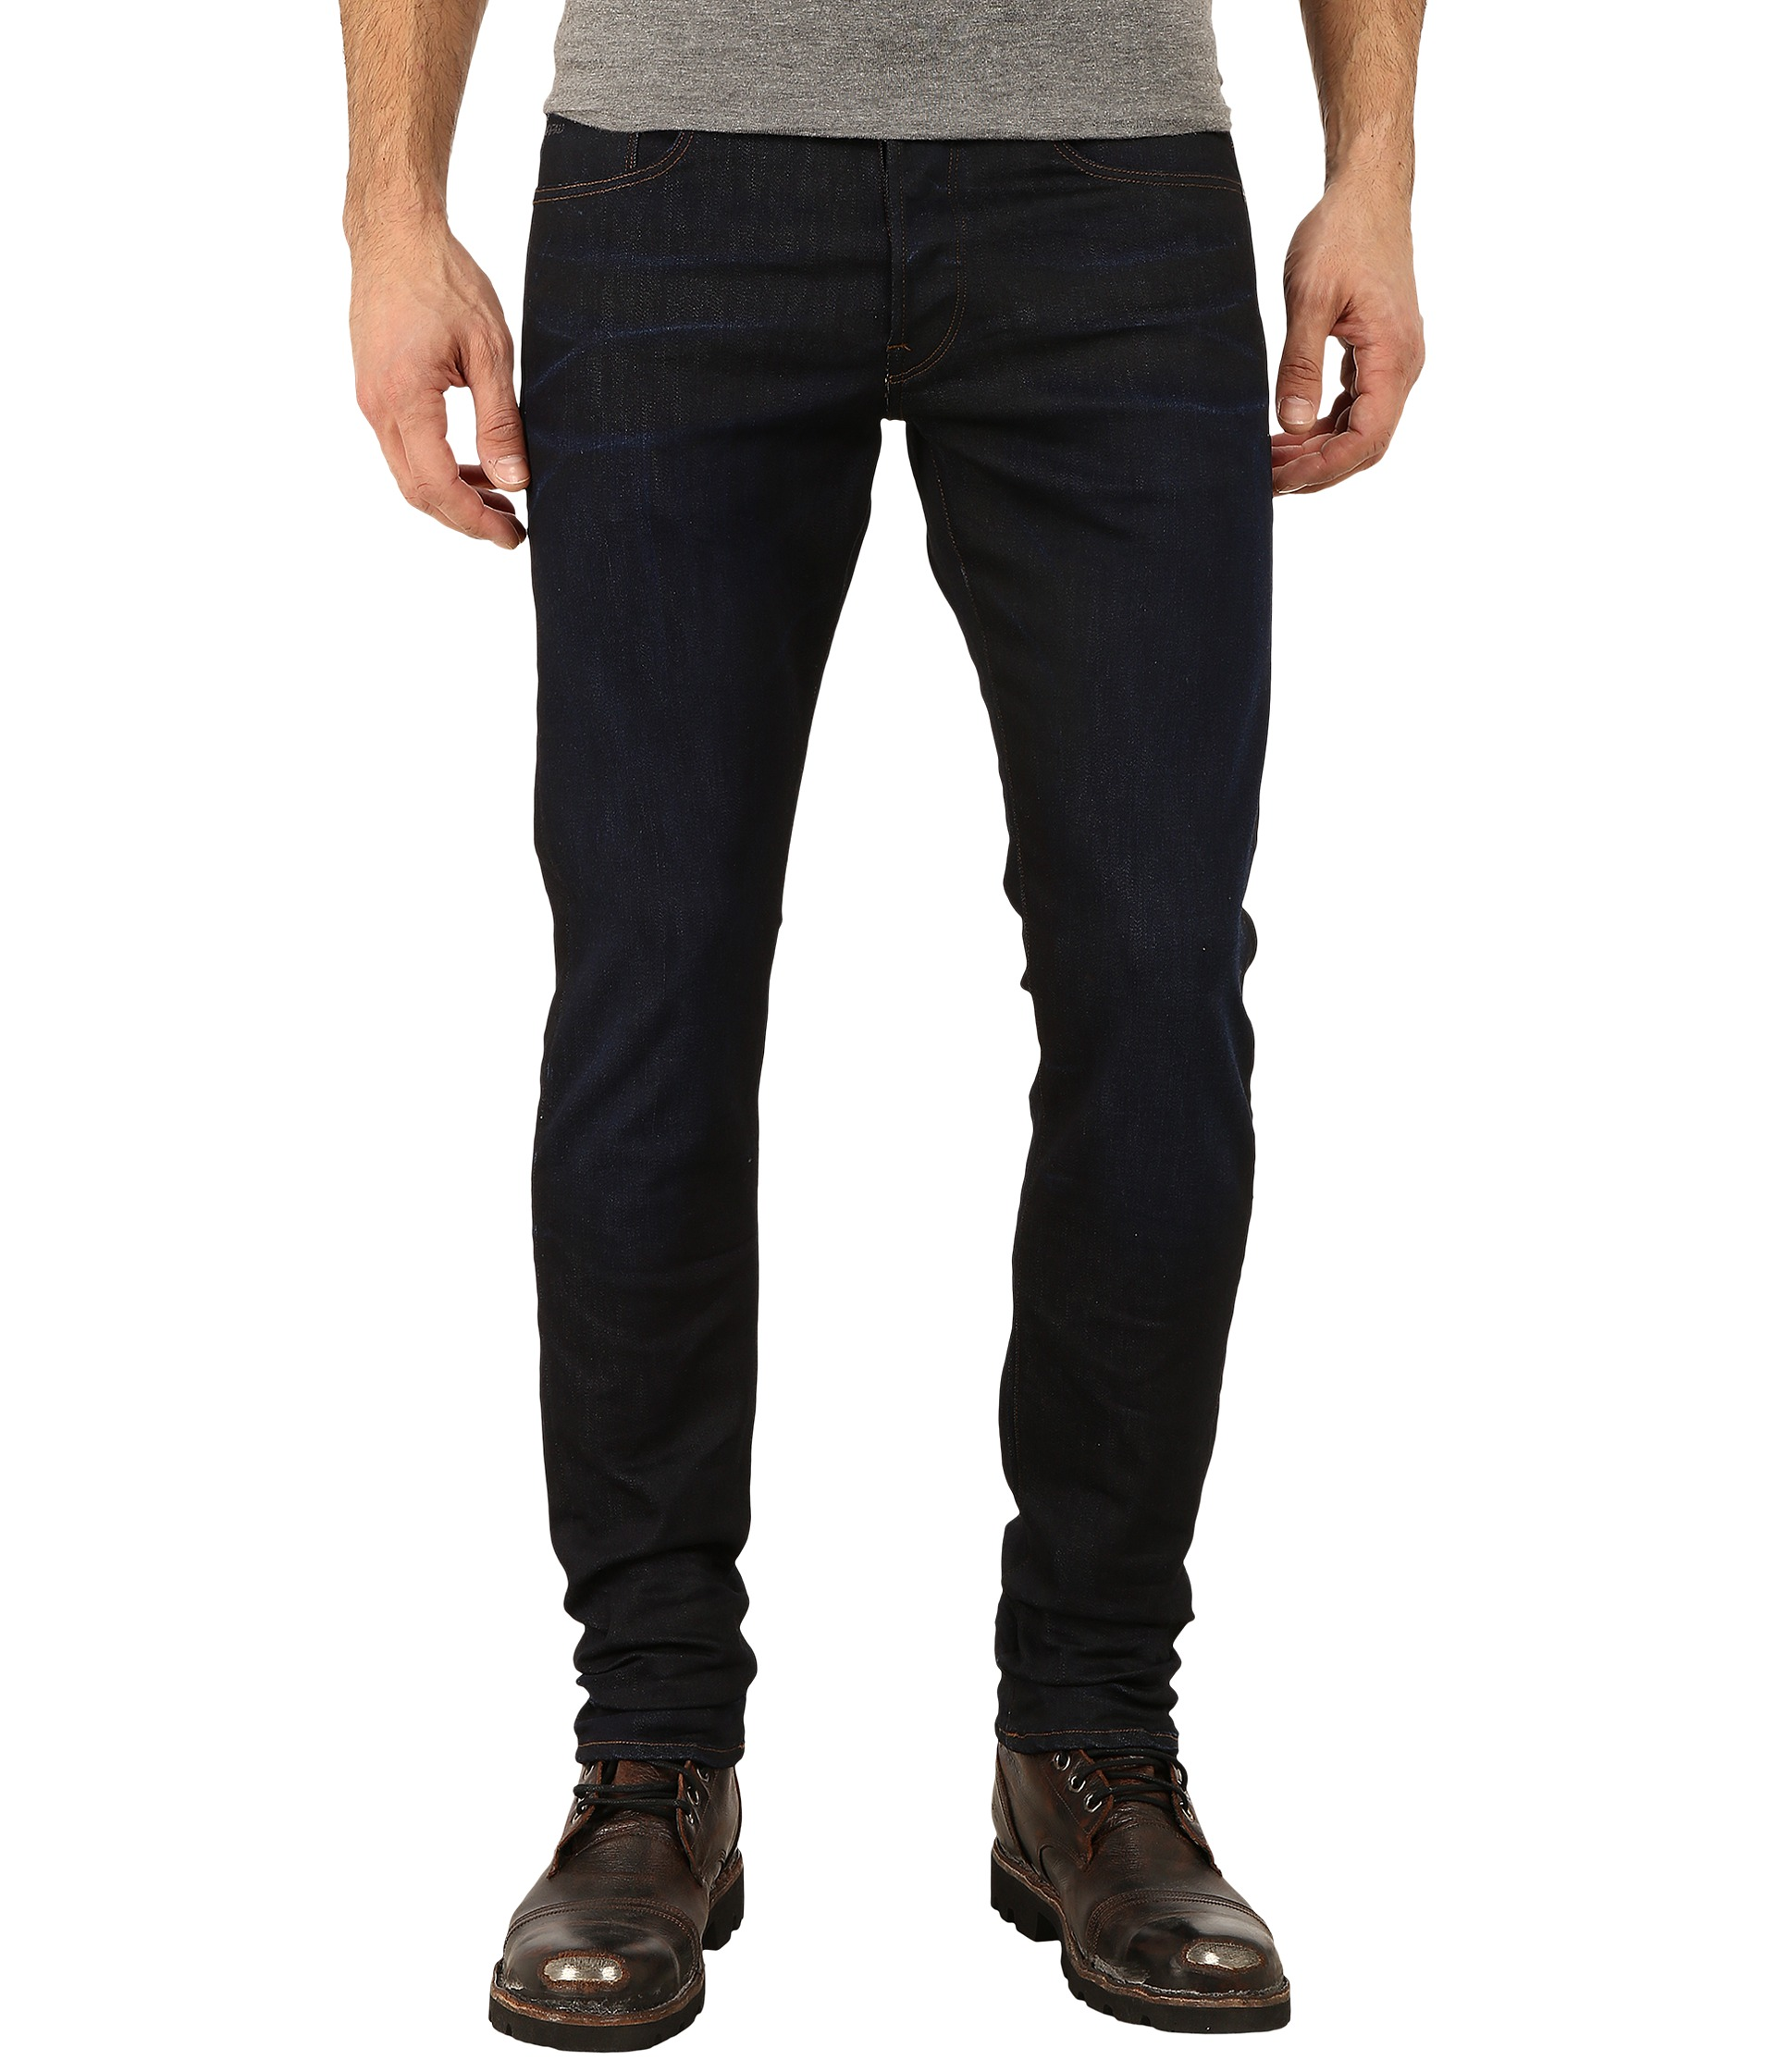 61358ad8 80%OFF G Star 3301 Tapered Fit Jeans in Visor Stretch Denim Dark Aged at